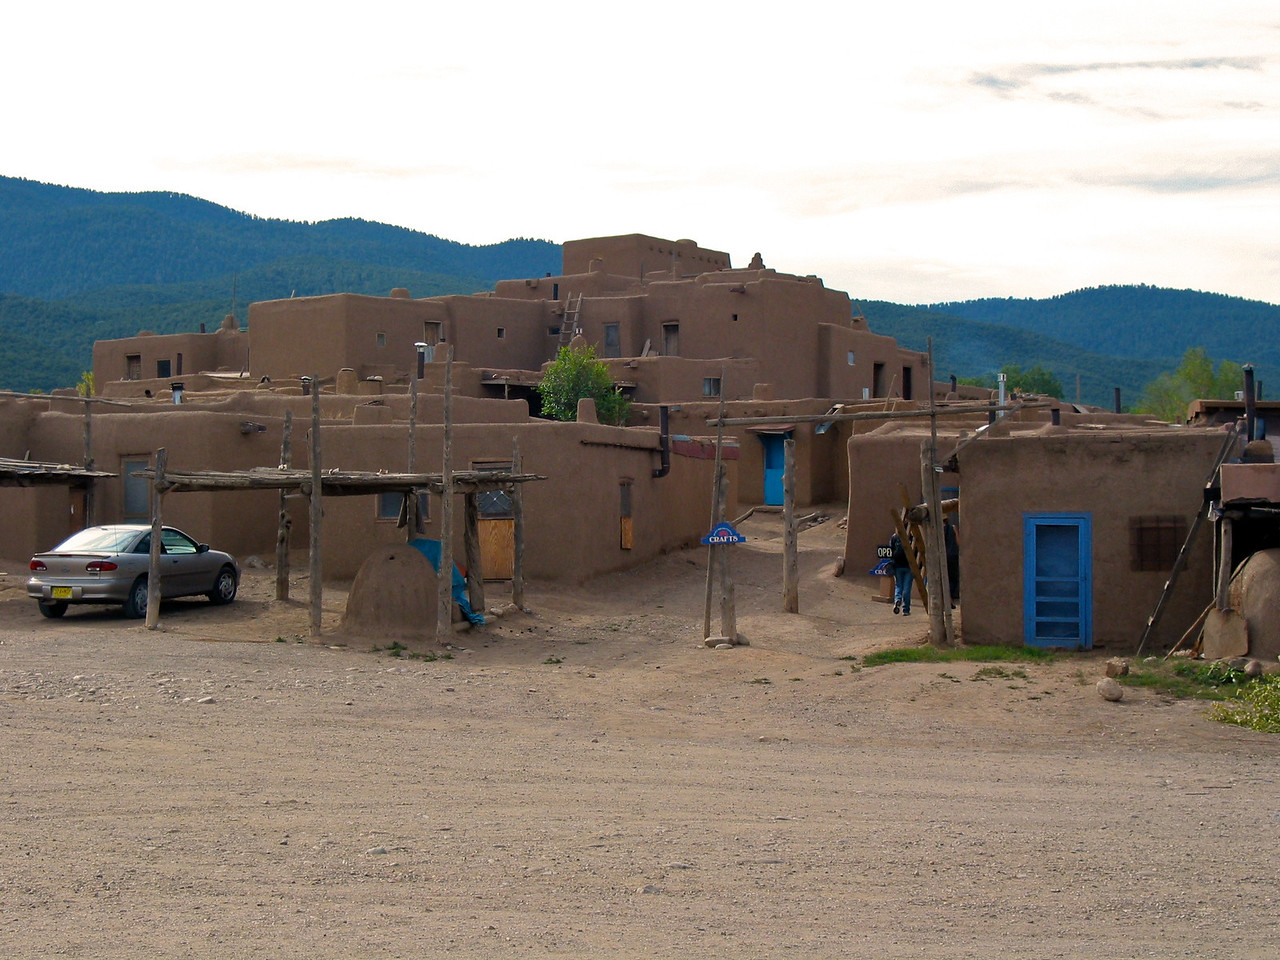 The homes in this structure usually consist of two rooms, one of which is for general living and sleeping, and the second of which is for cooking, eating, and storage. Each home is self-contained; there are no passageways between the houses. Taos Indians made little use of furniture in the past, but today they have tables, chairs, and beds. In the Pueblo, electricity, running water, and indoor plumbing are prohibited.